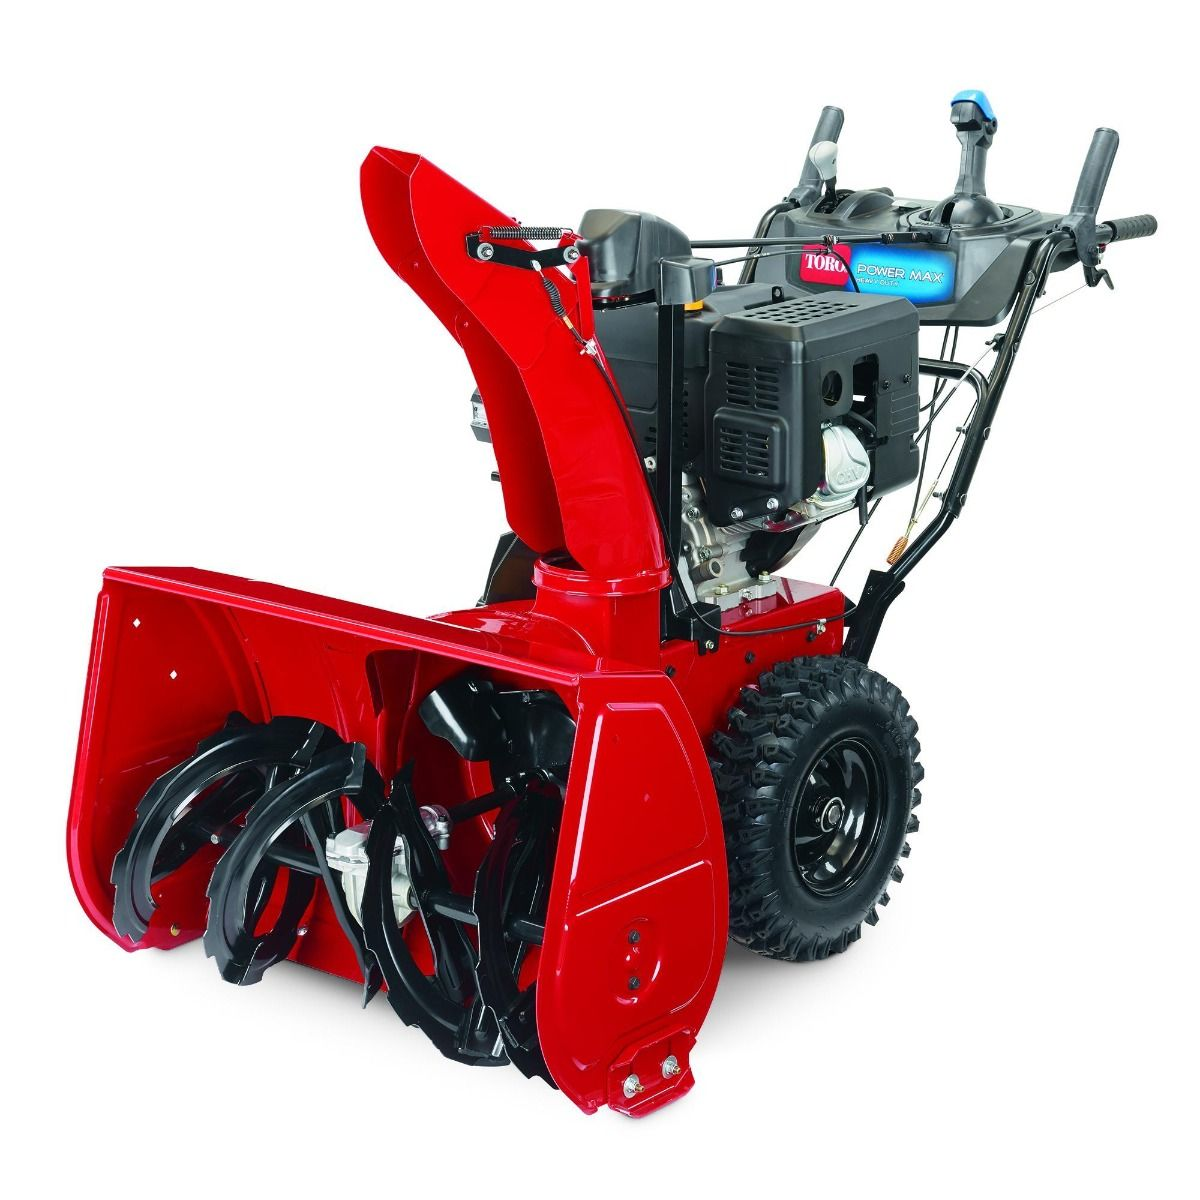 Toro 38841 Power Max HD 1028OHXE Two-Stage Snowblower